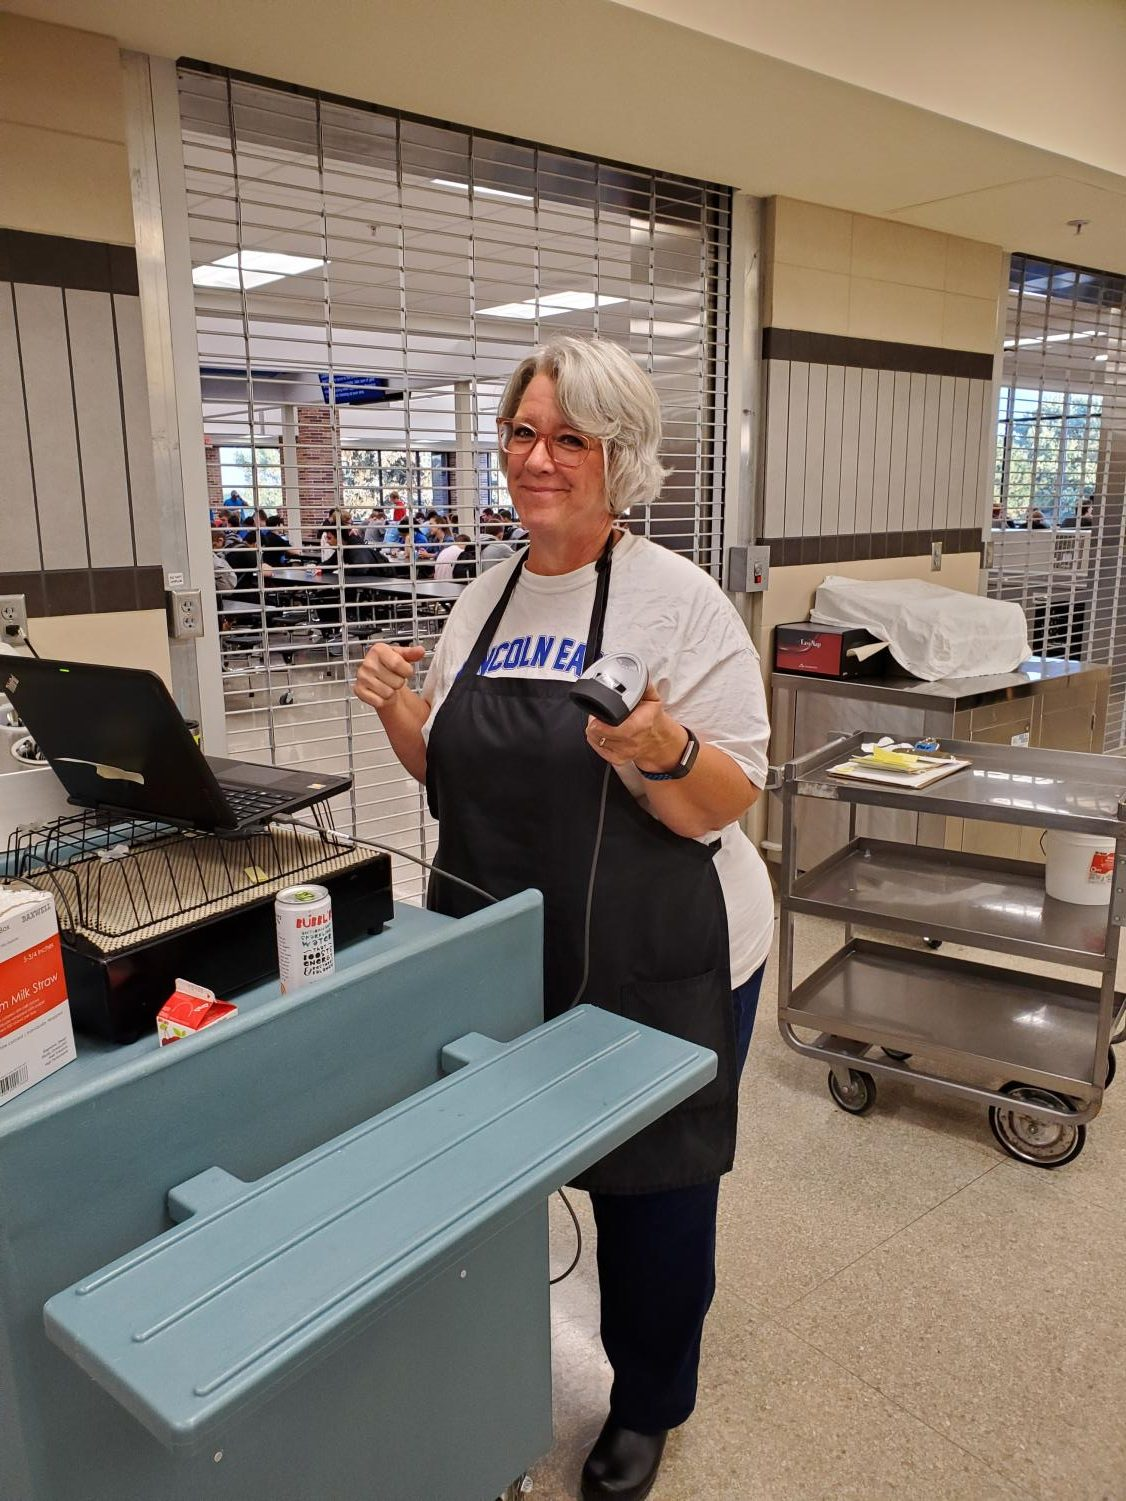 Susan Zander working to serve breakfast to students in the cafeteria before school